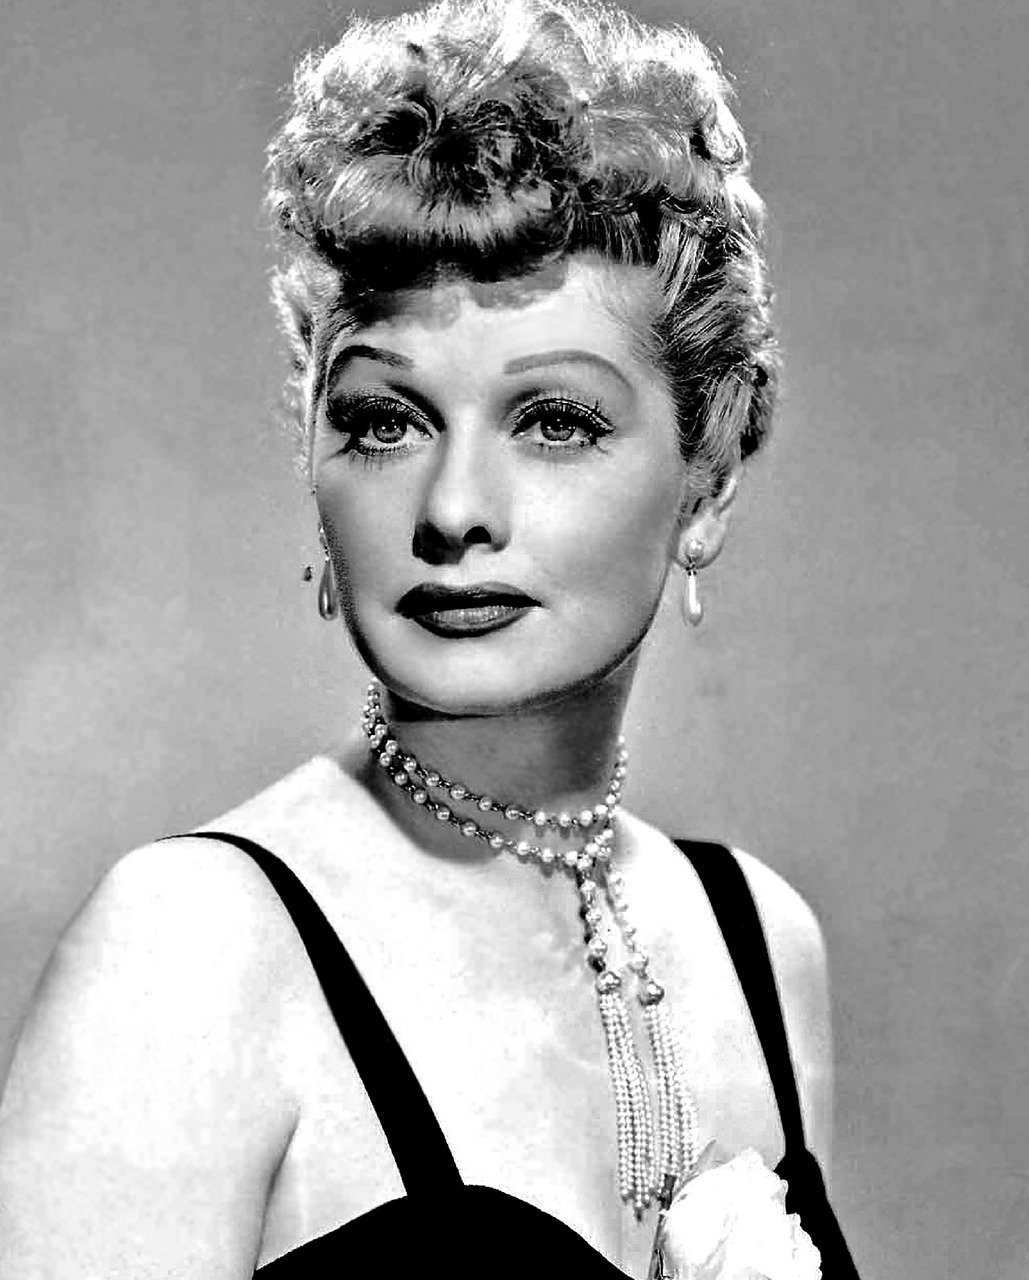 TV Guide has said that Lucille Ball has been seen by more people than any other person.